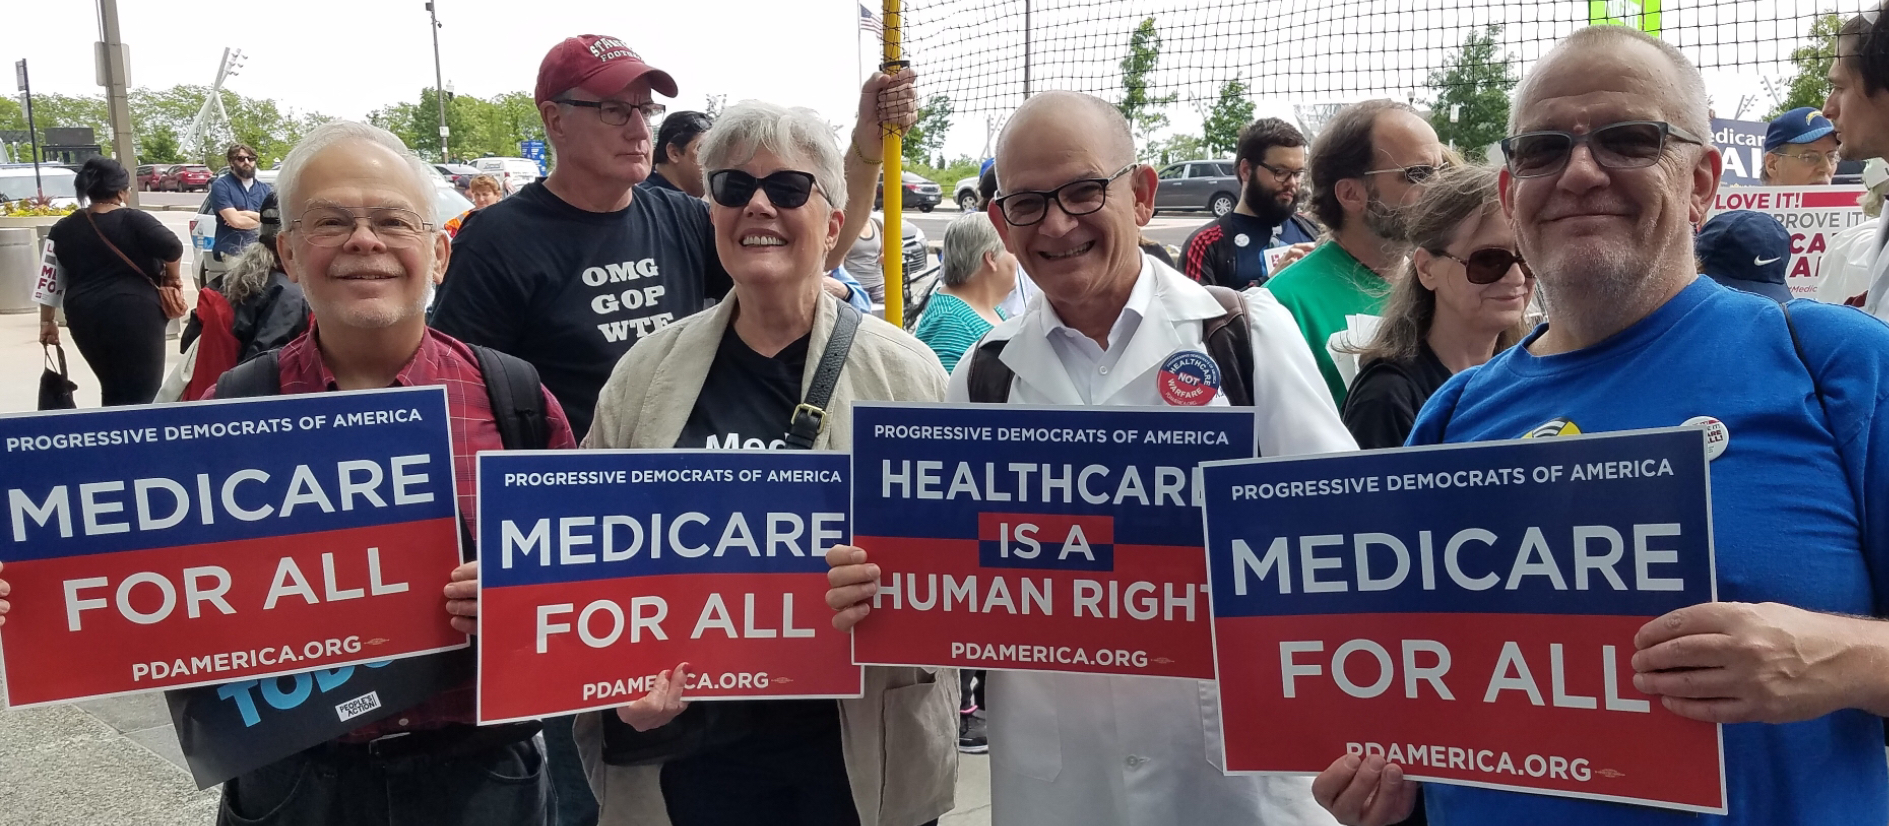 , After explaining Medicare-For-All to Right-Winger w/o using its name, she blurted: You are so nice!, The Politicus